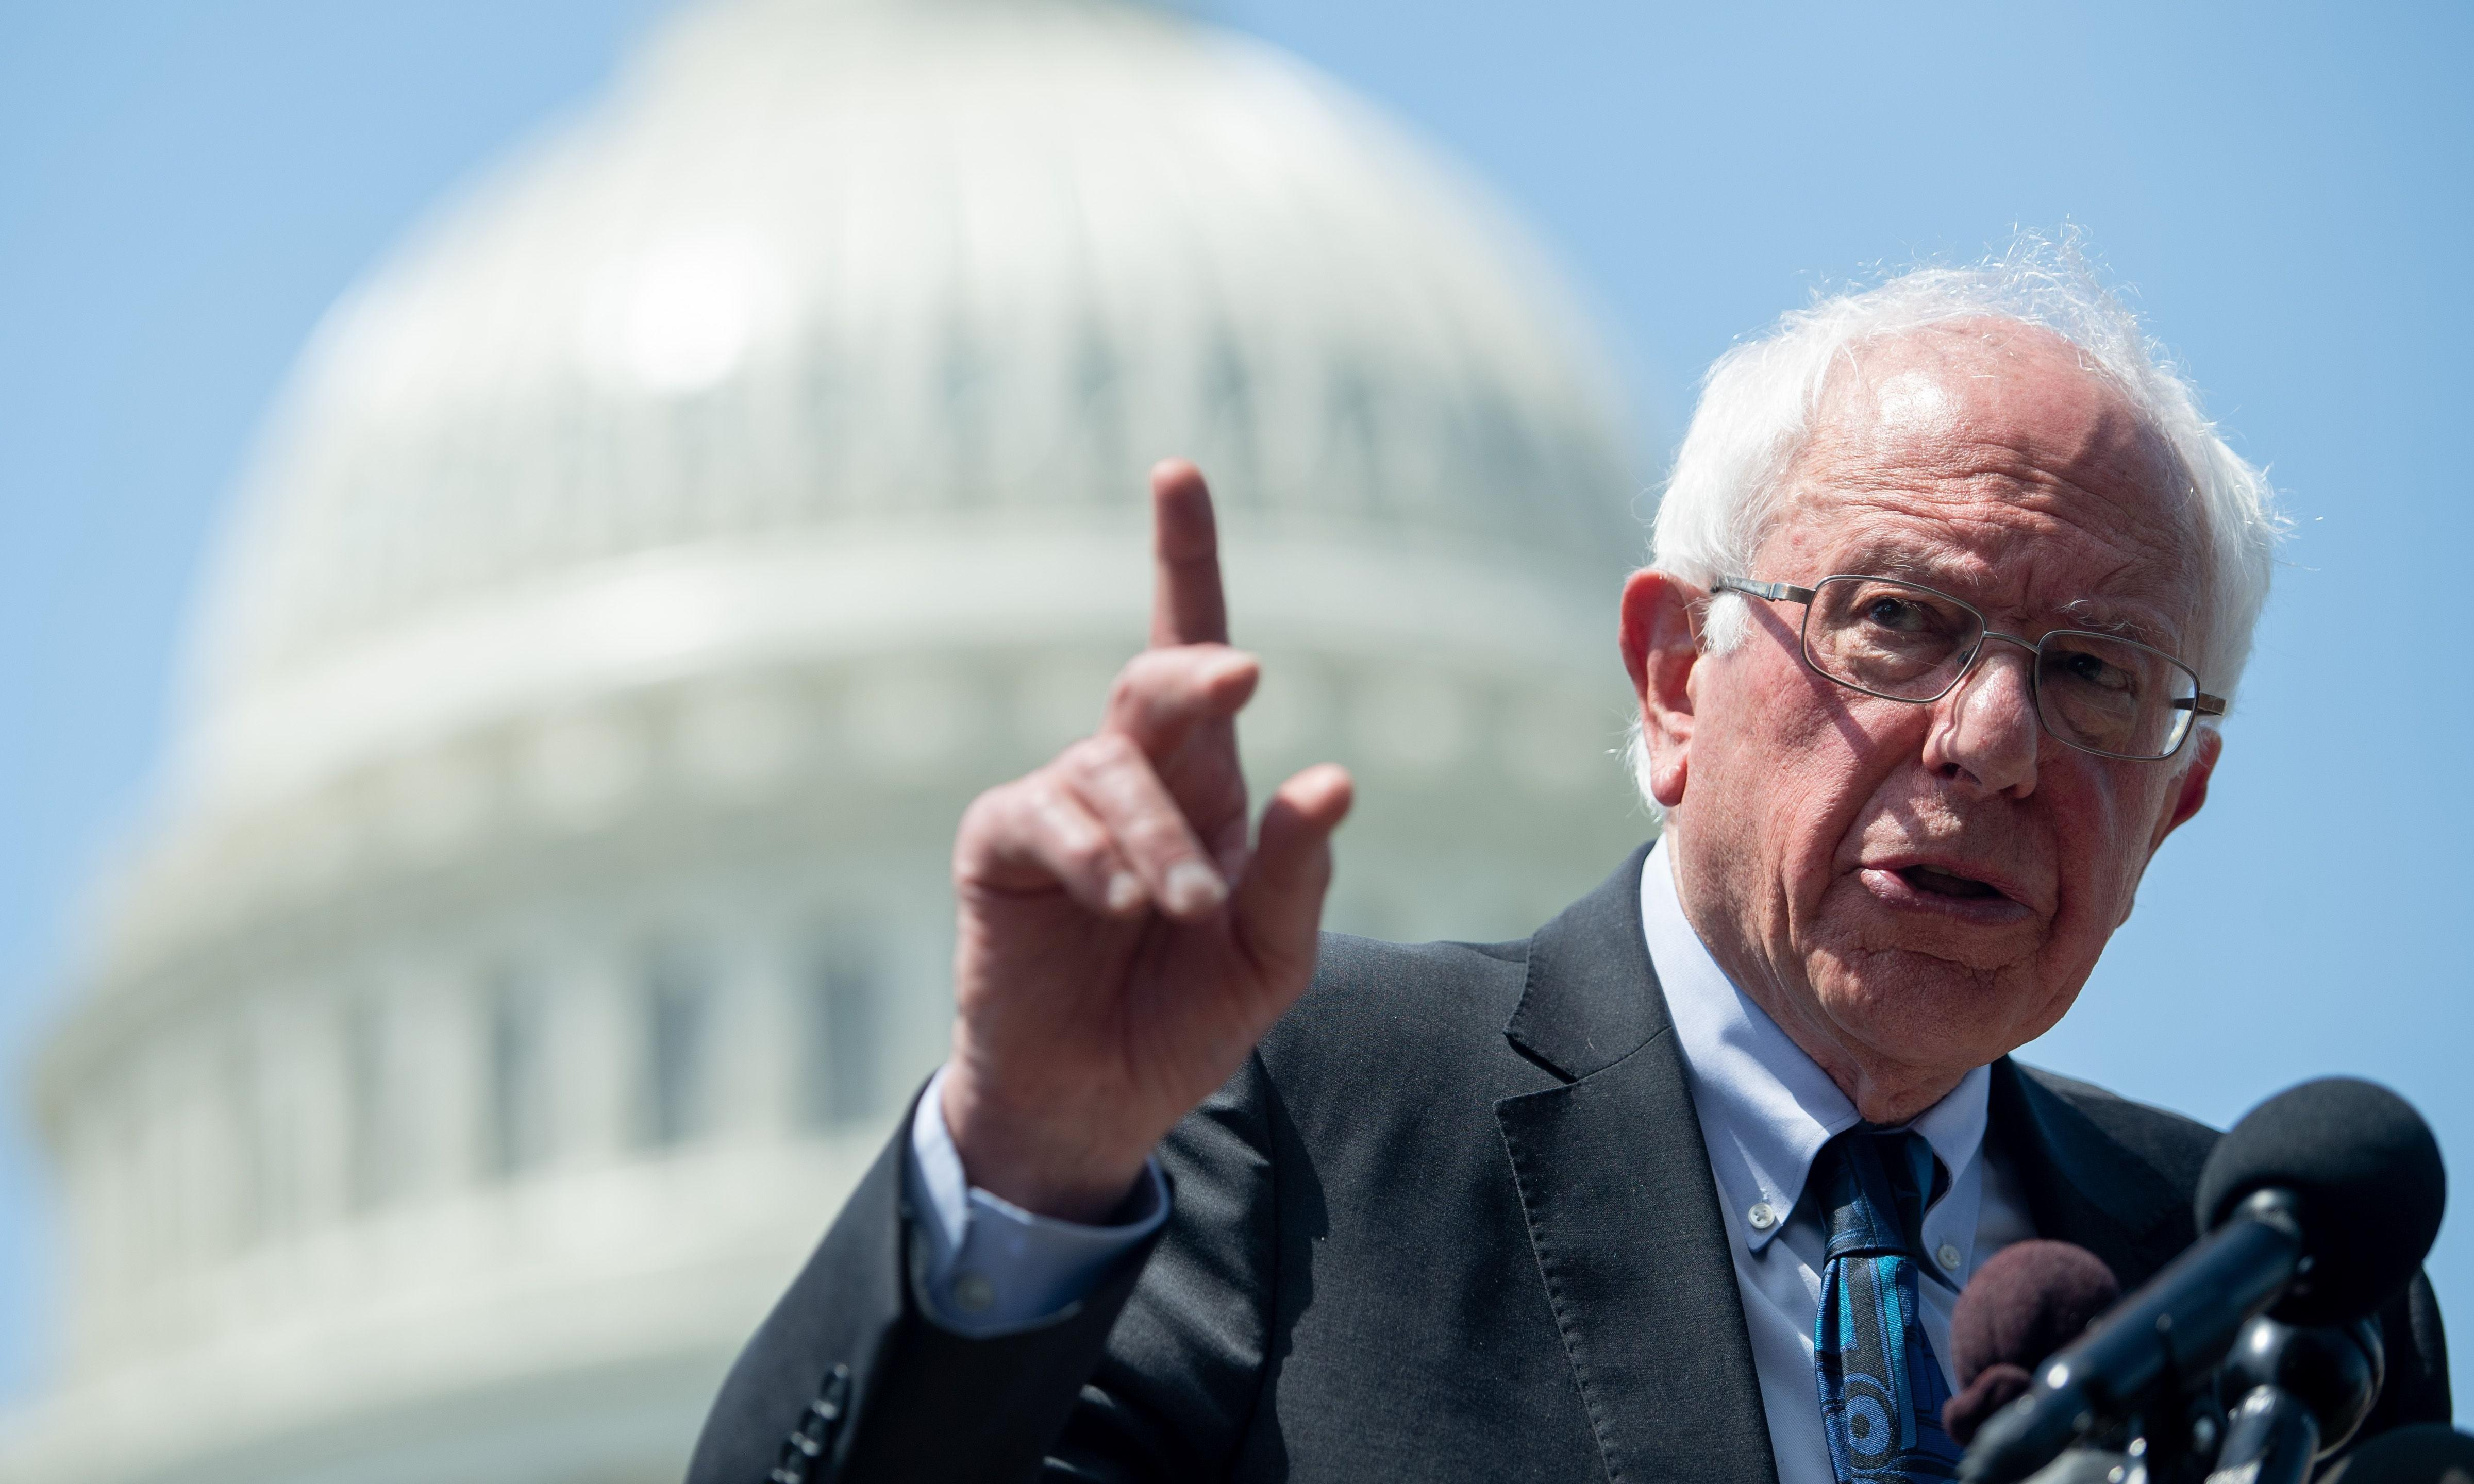 Sanders campaign says he will close migrant detention centers if elected